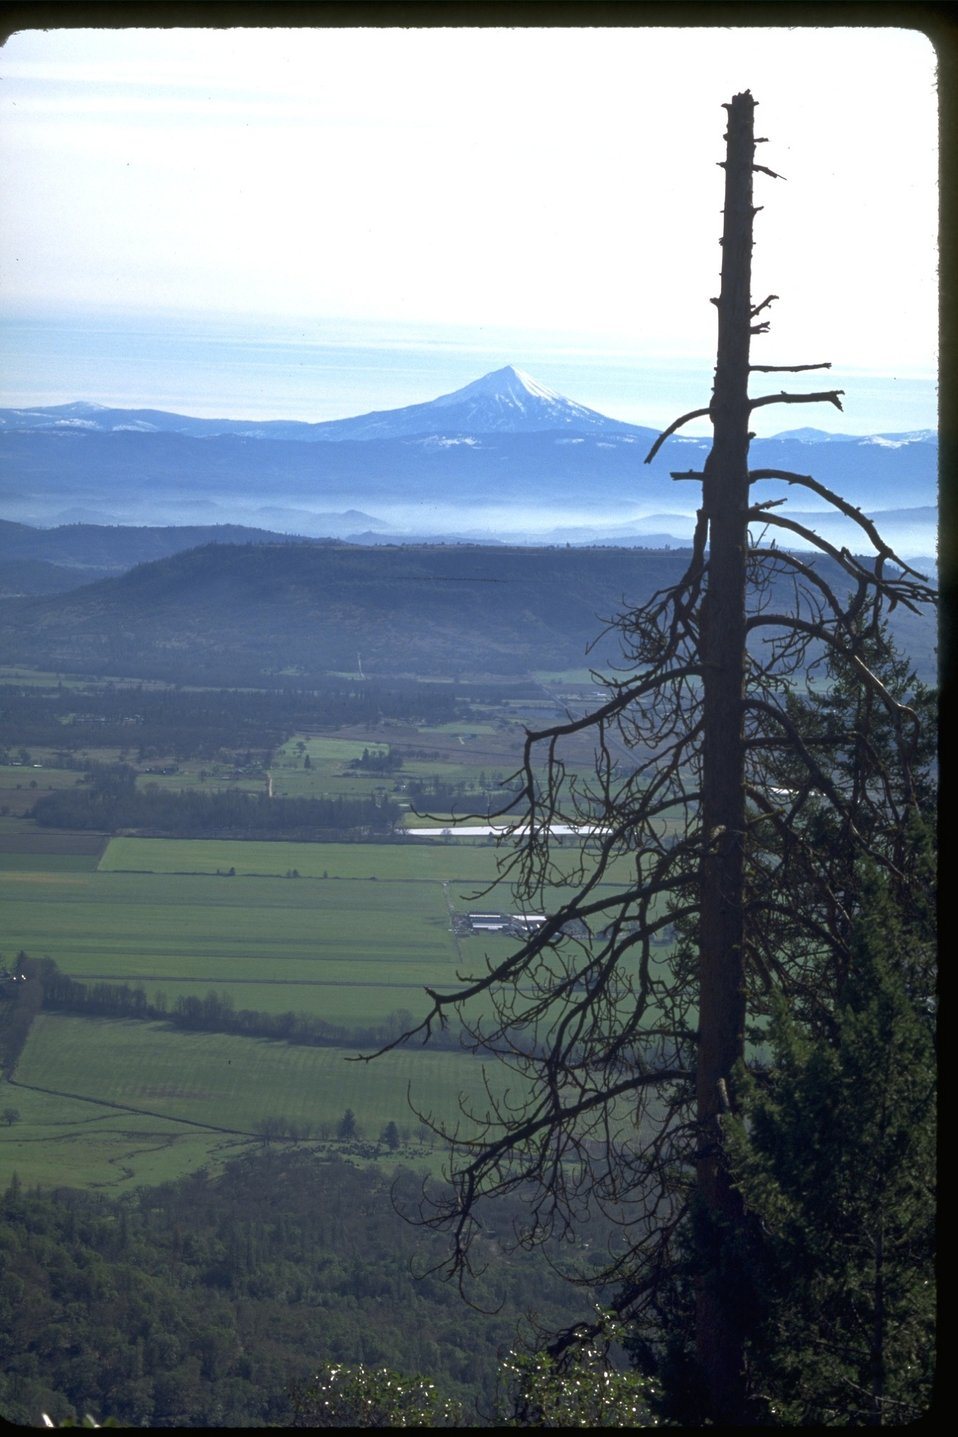 Upper Table Rock and Mount Mcloughlin in the background.